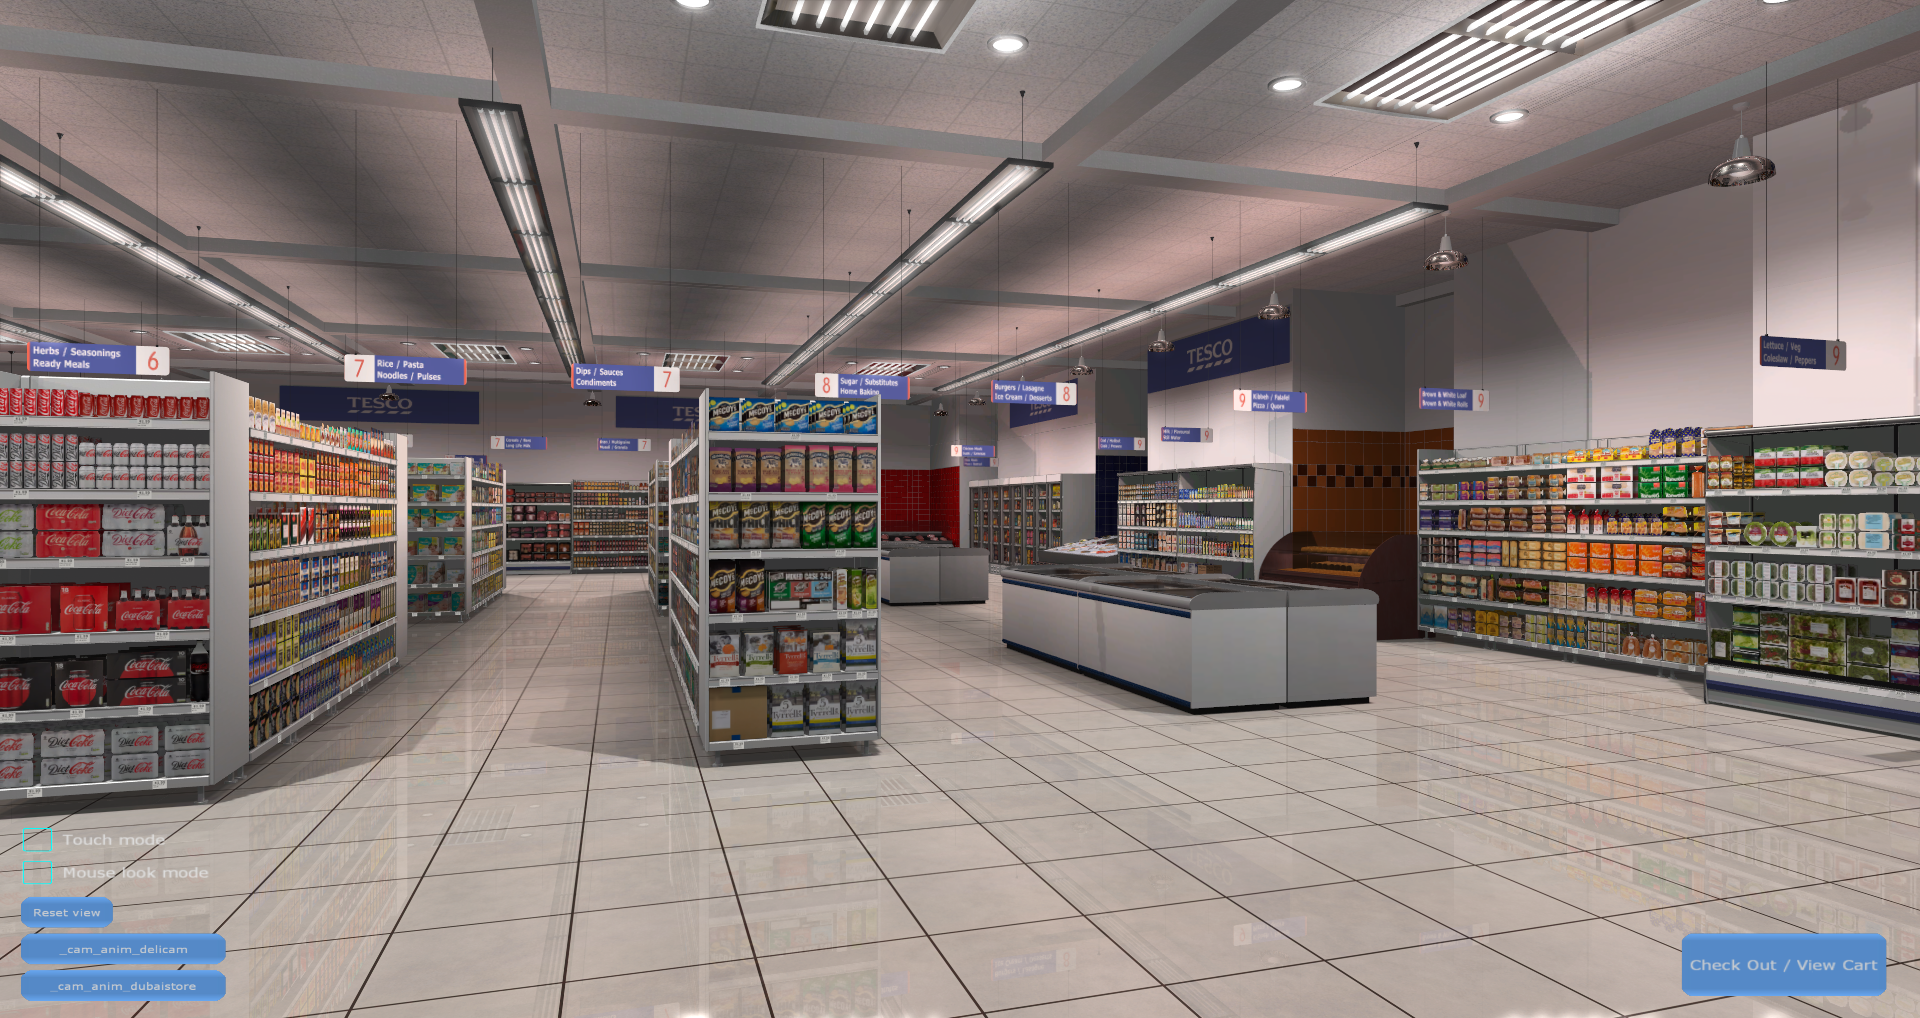 3D Shopping Virtual Store Screenshot from Carrefour VR Supermarket 3